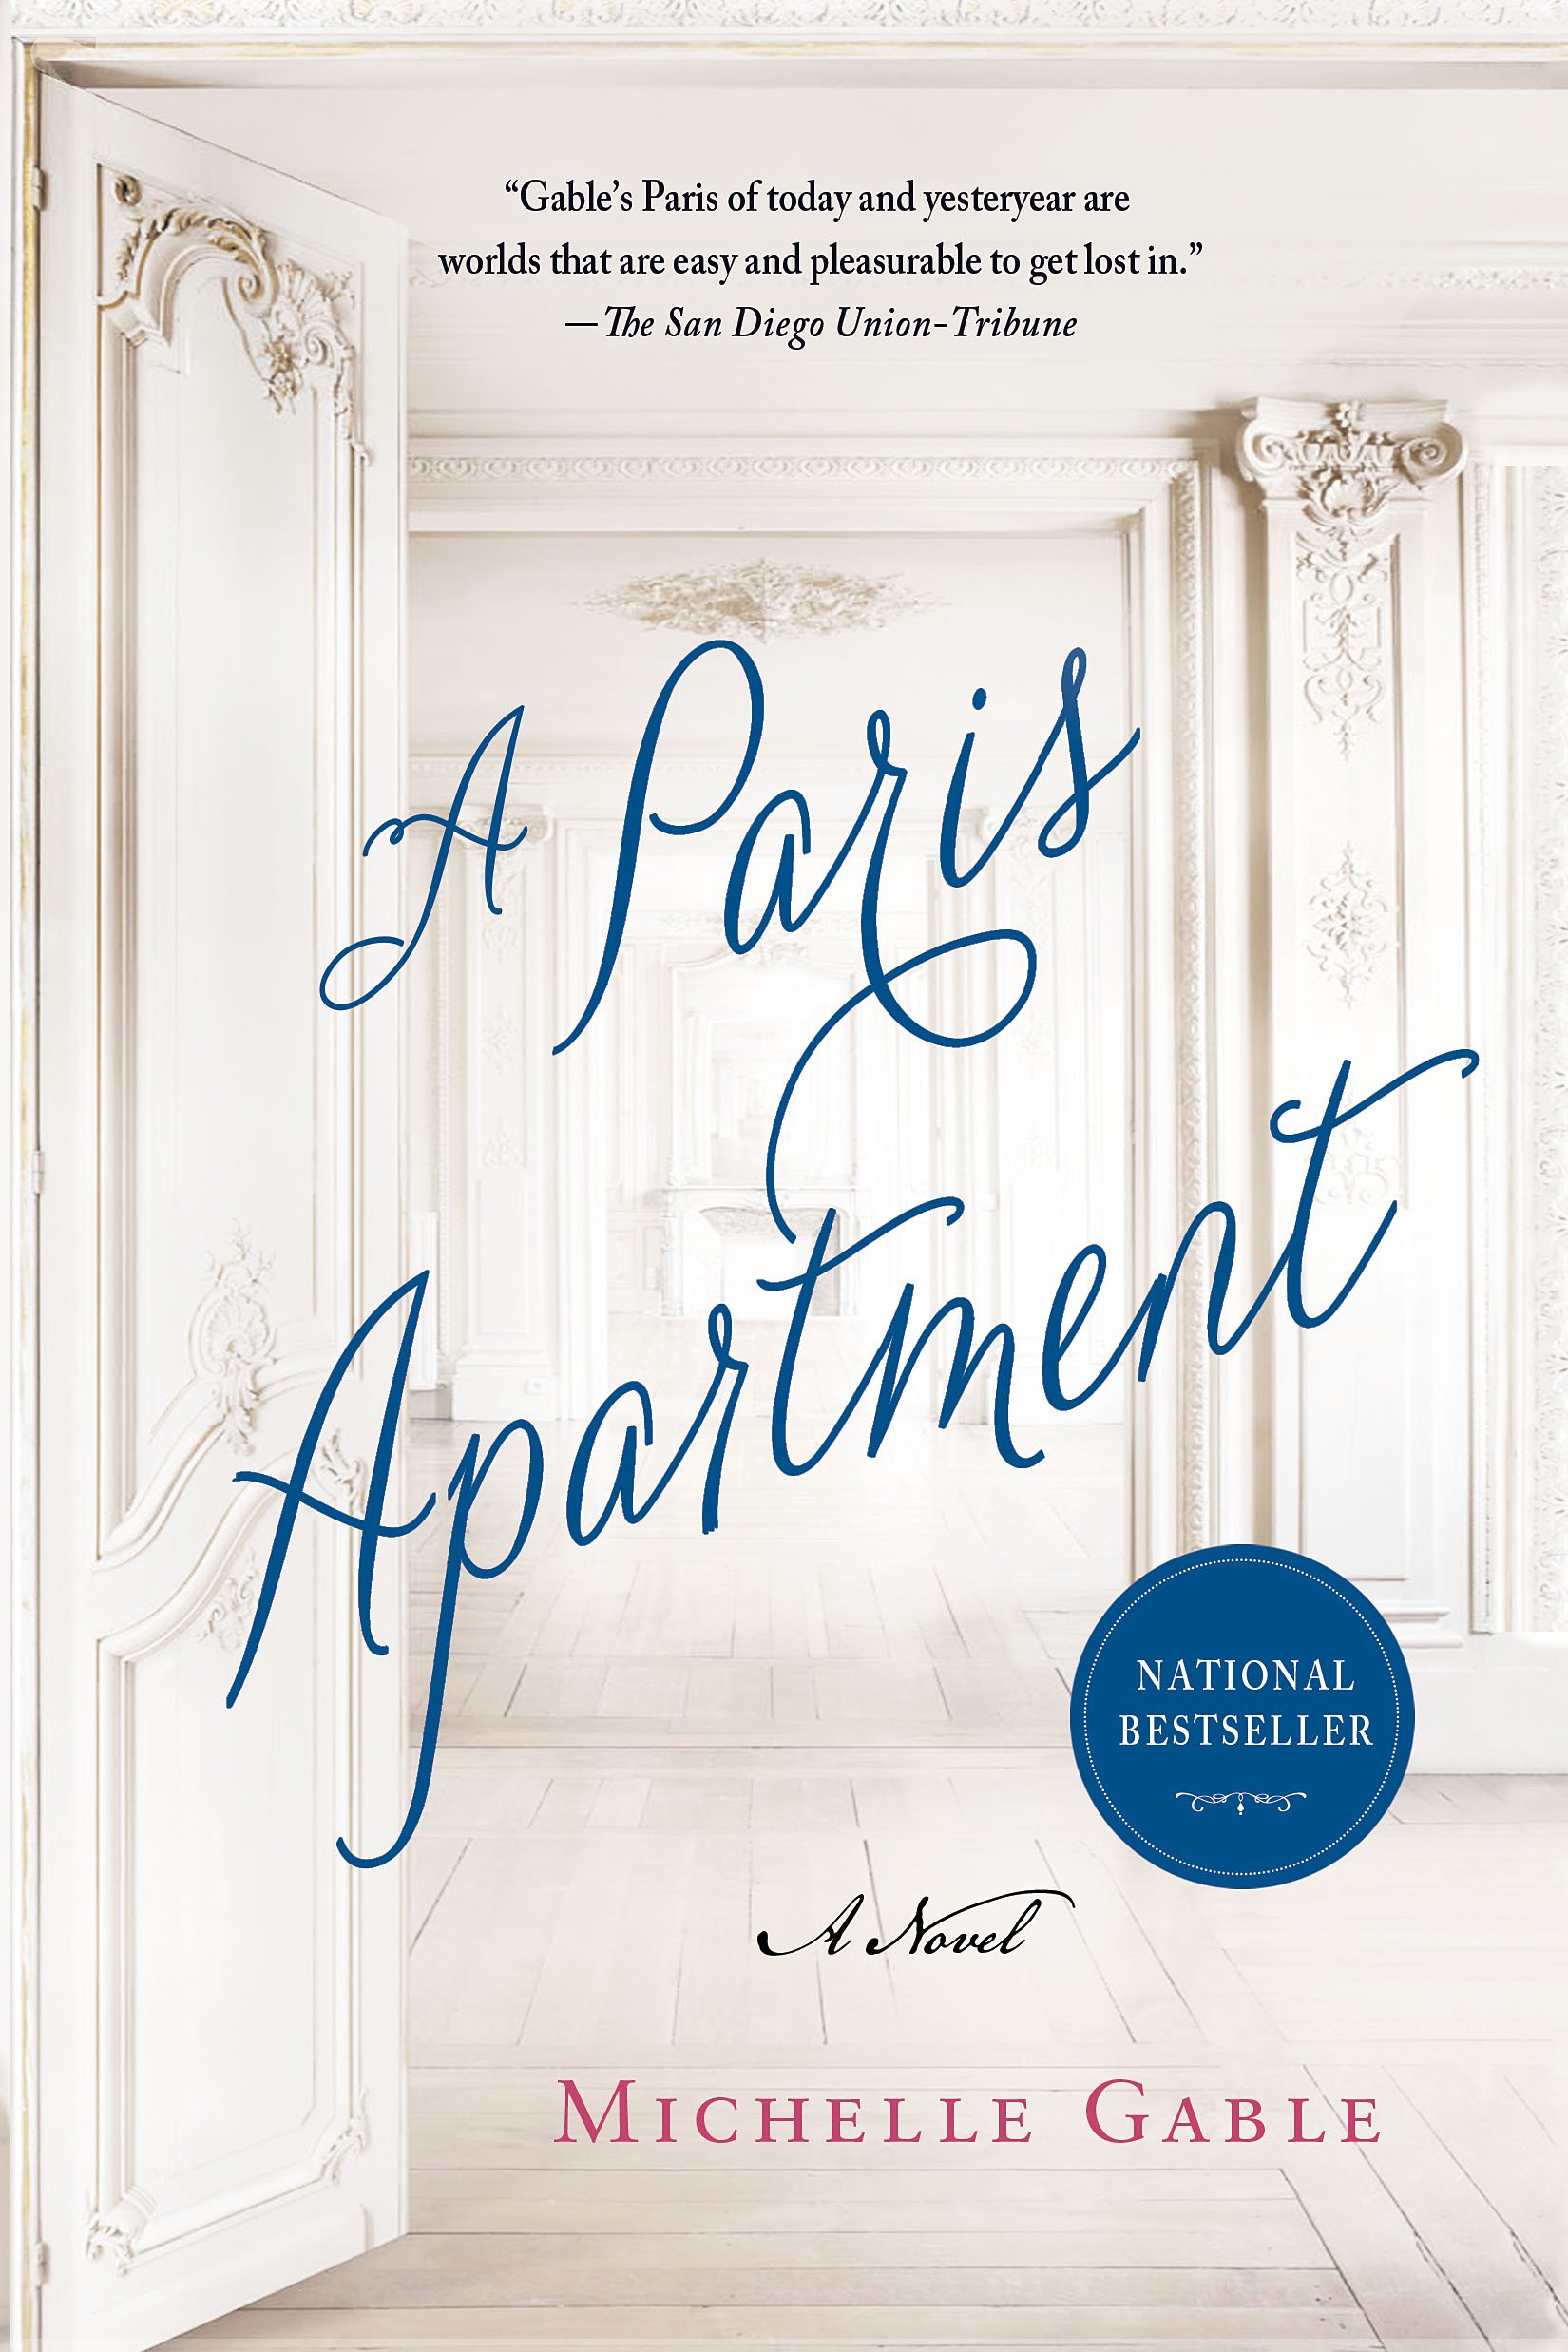 A Paris Apartment, a novel by Michelle Gable